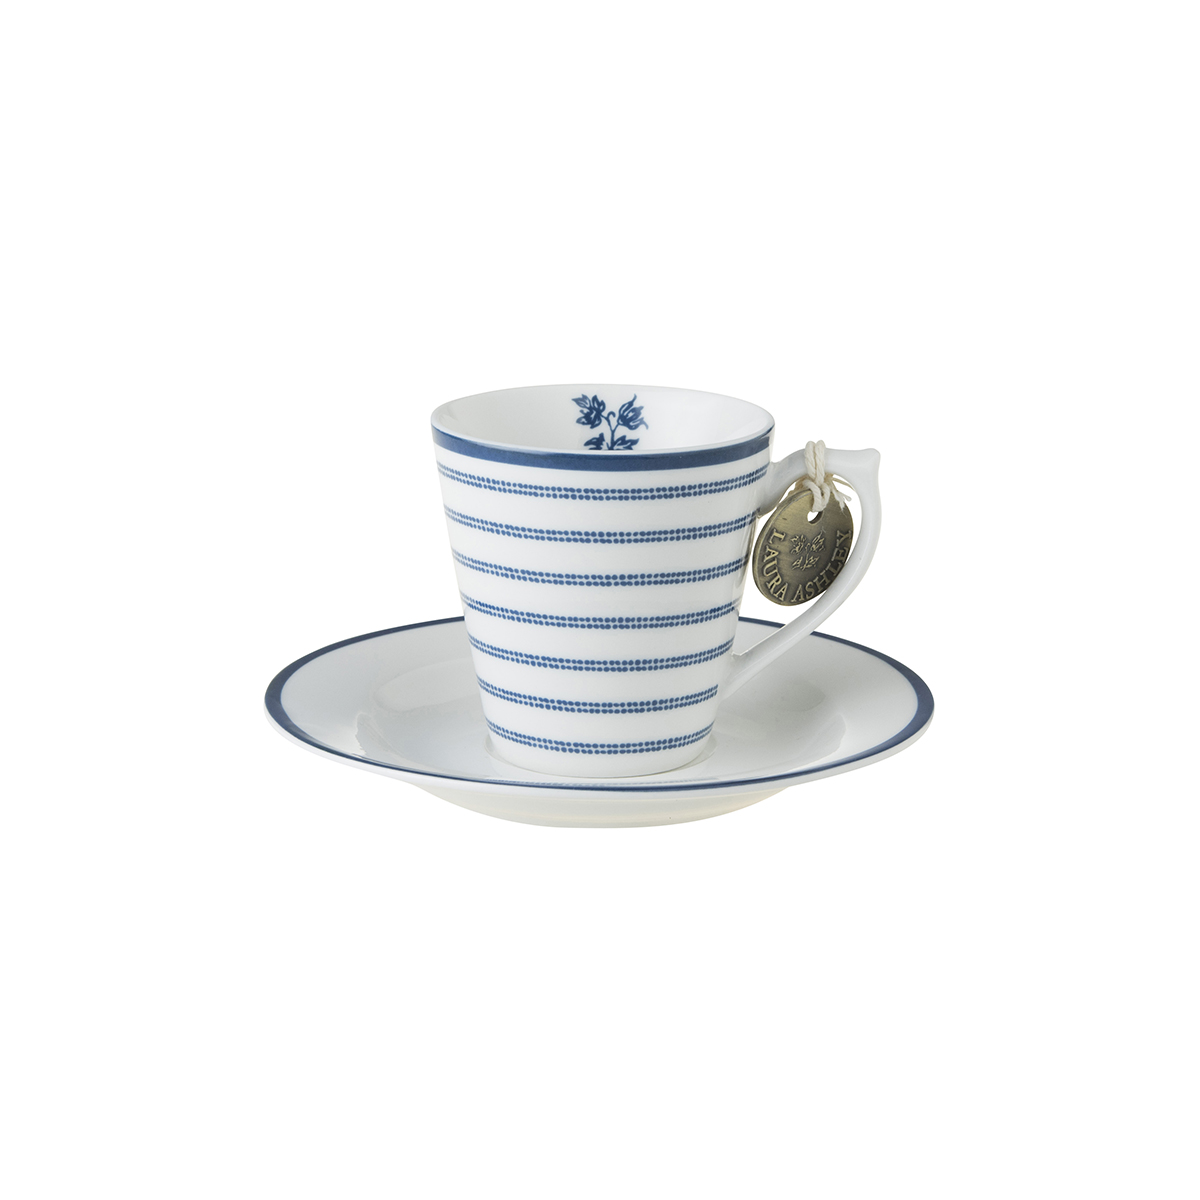 kop-en-schotel-espresso-candy-laura-ashley-178692-v